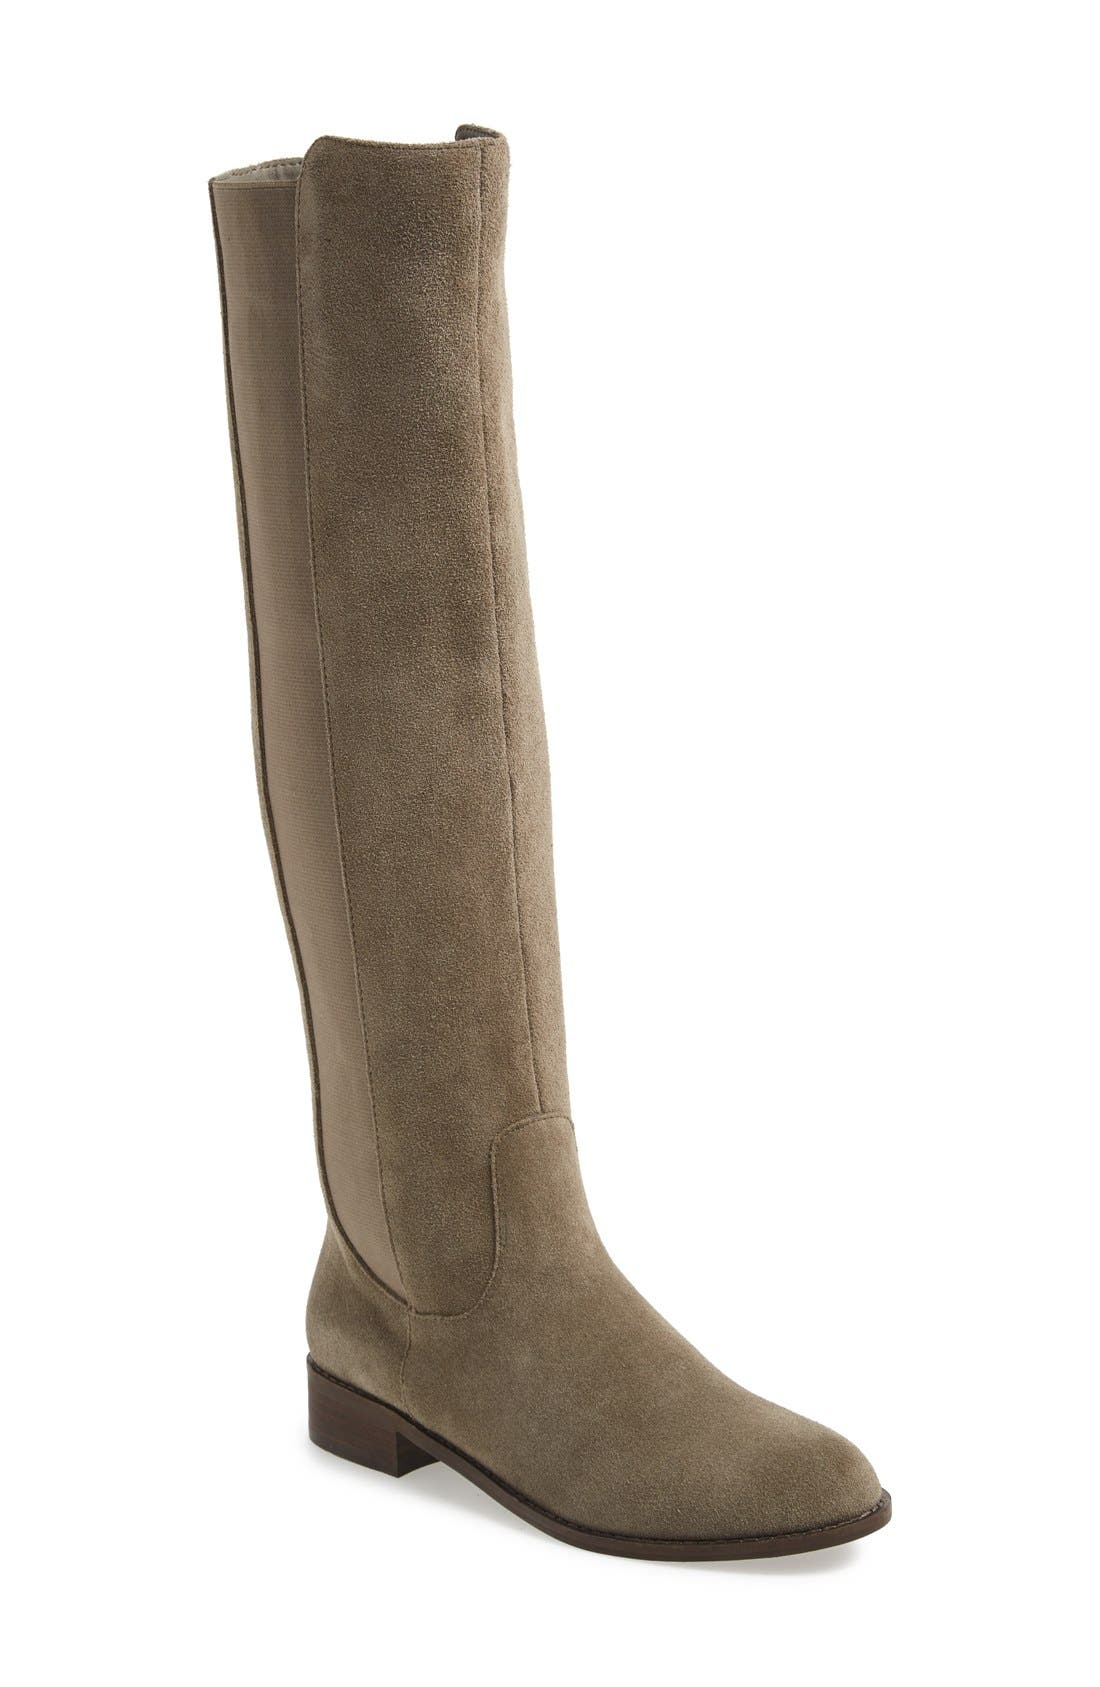 Alternate Image 1 Selected - Very Volatile 'Timber' Suede Knee High Boot (Women)